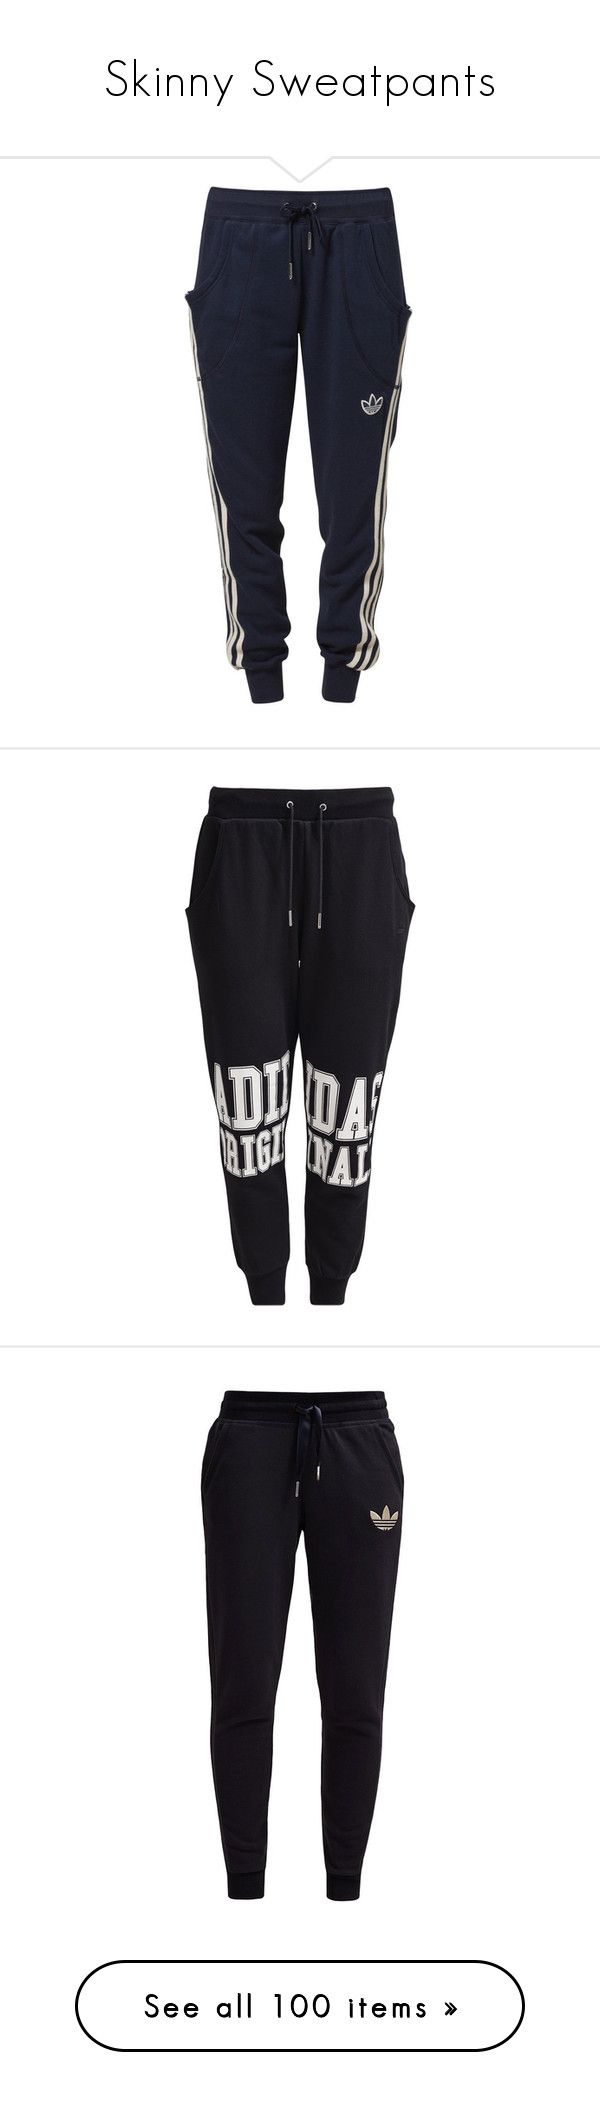 """""""Skinny Sweatpants"""" by nnenna21 ❤ liked on Polyvore featuring activewear, activewear pants, pants, bottoms, sweatpants, jeans, blue, joggers &amp sweats, women's sportswear and jogger sweat pants"""